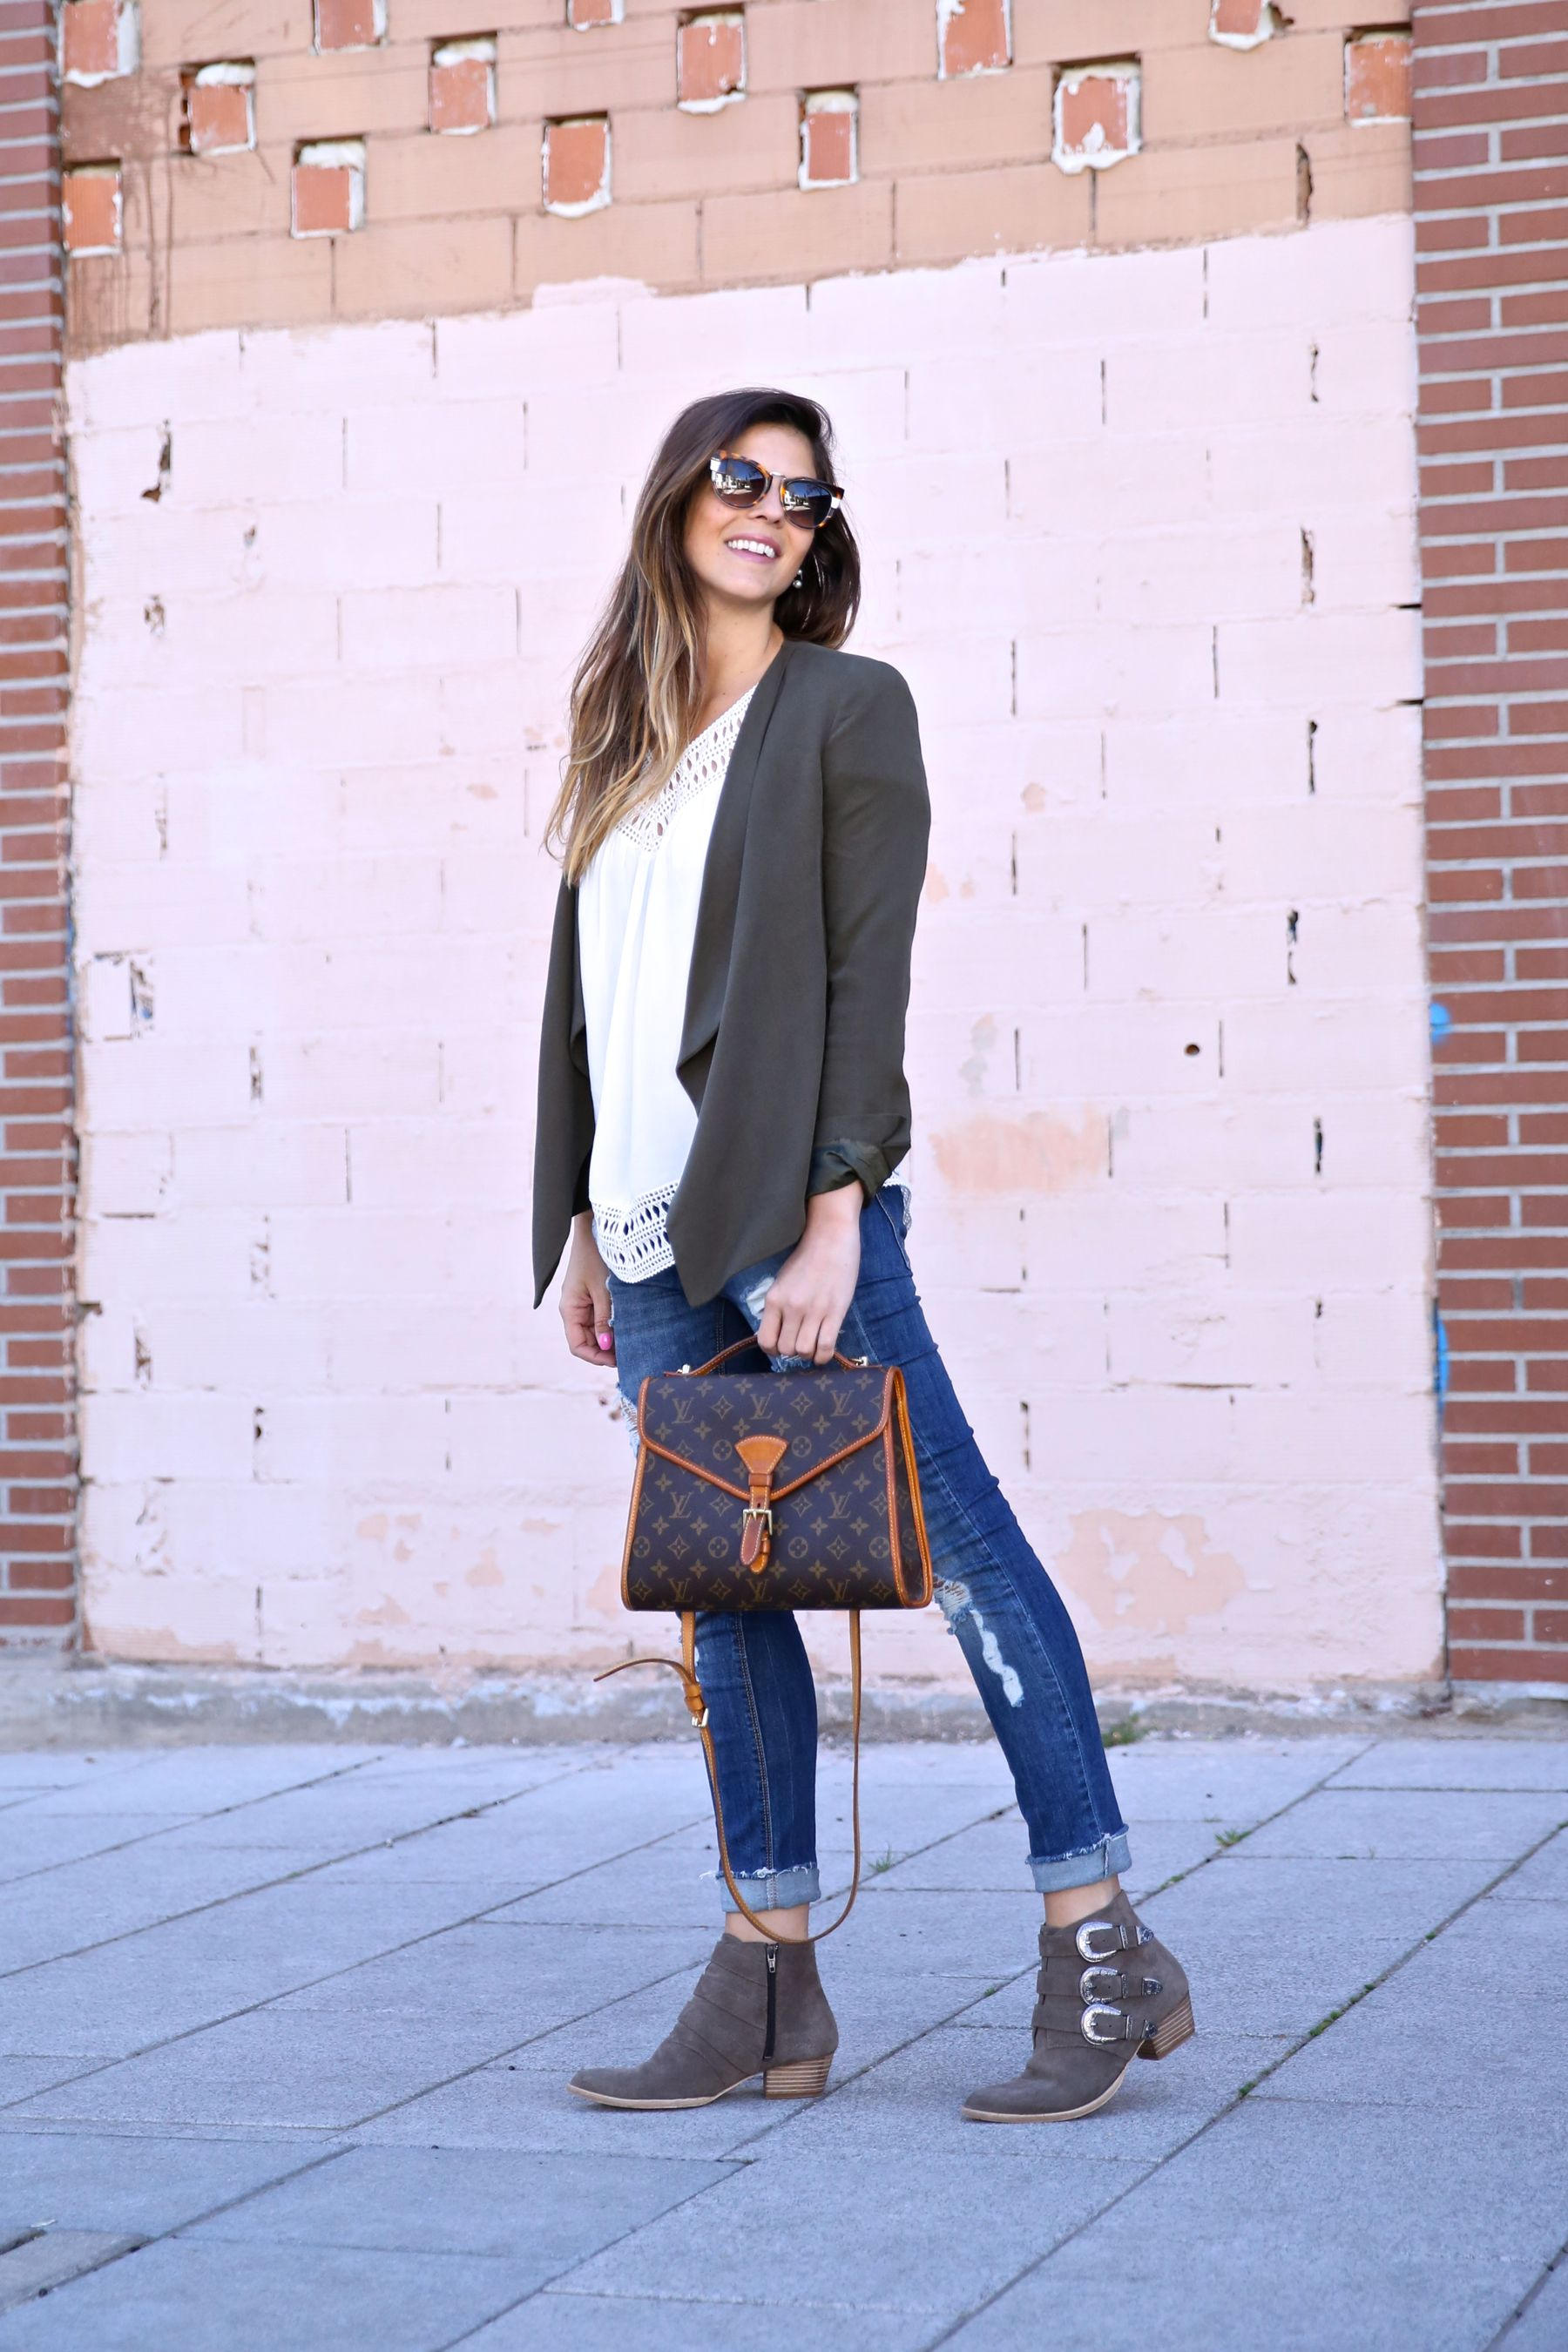 Natalia Cabezas is wearing a white Buylevard blouse with a khaki Zara blazer, distressed Pull & Bear jeans and Mustt ankle boots